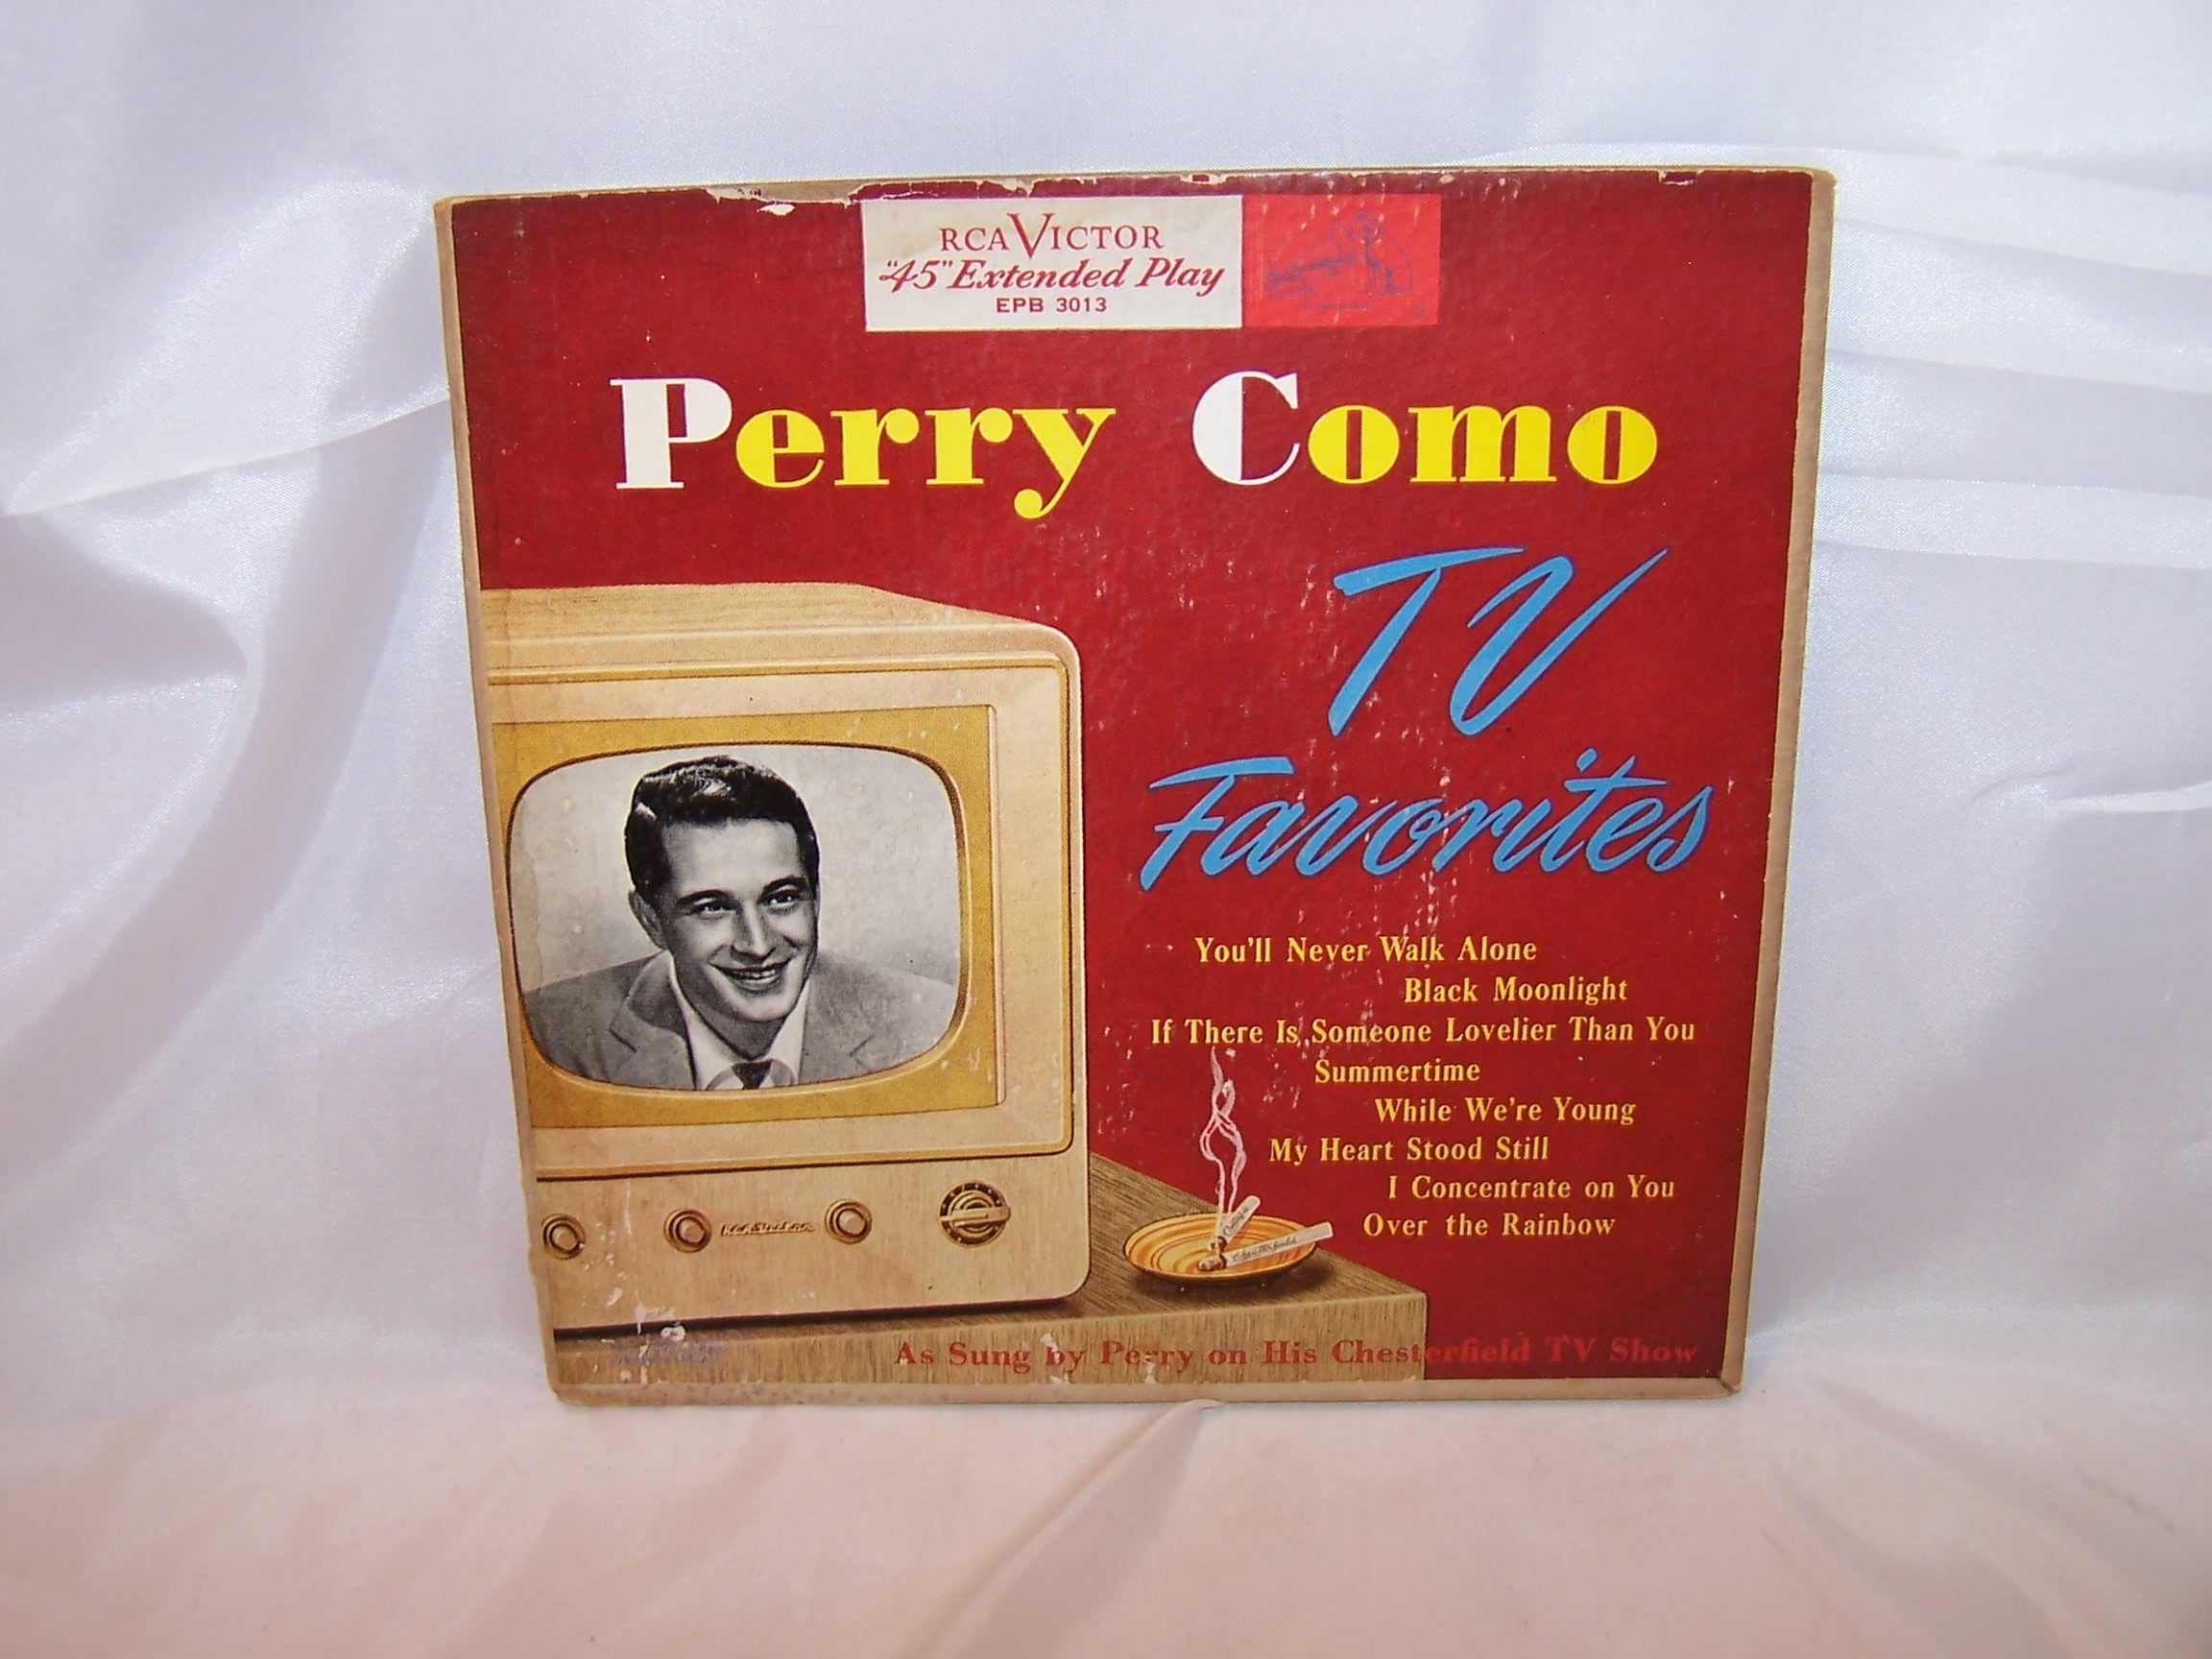 Perry Como, TV Favorites 45 RPM Record Set